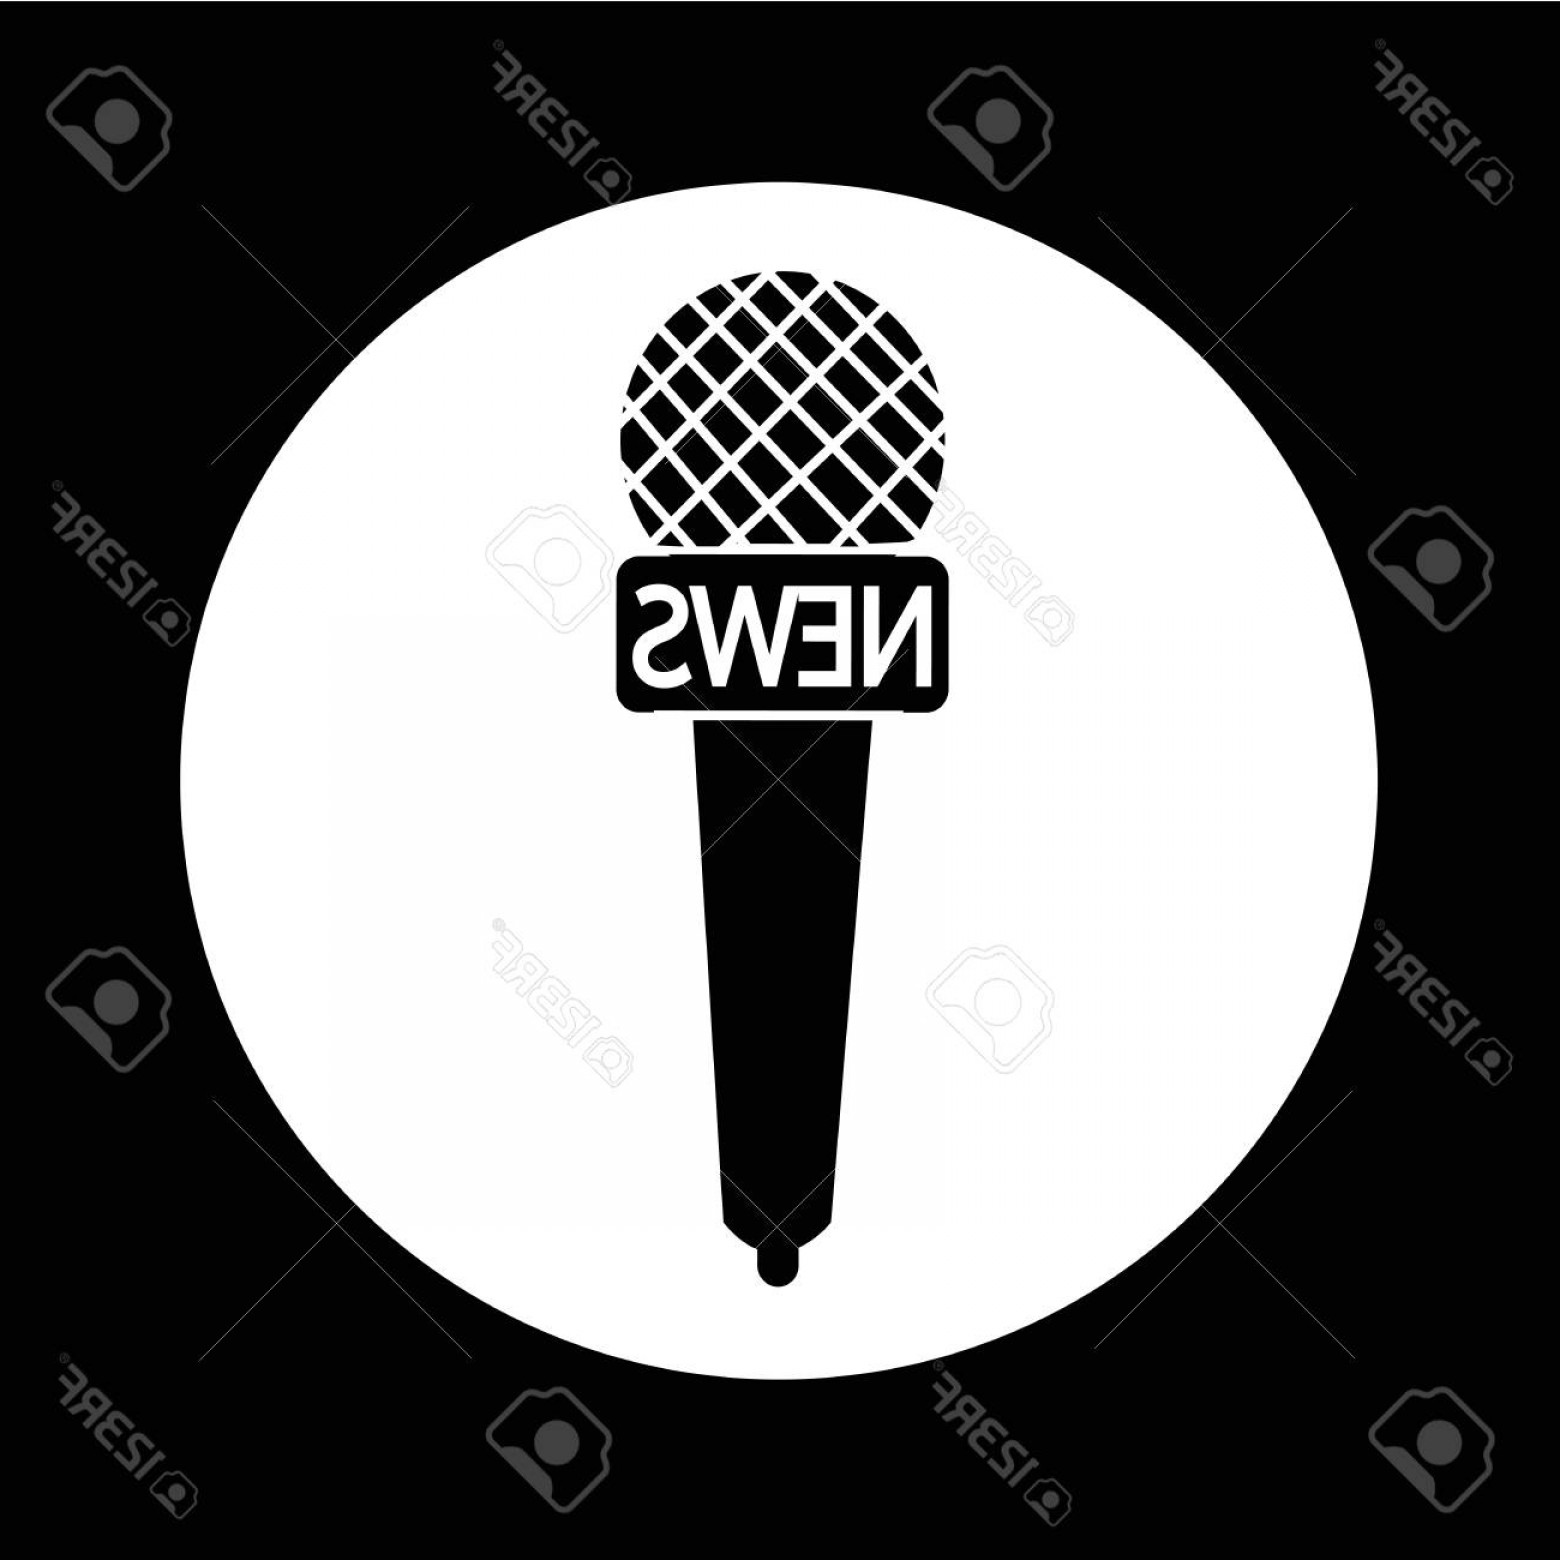 News Microphone Icon Vector: Photostock Vector News Microphone Icon Illustration Design